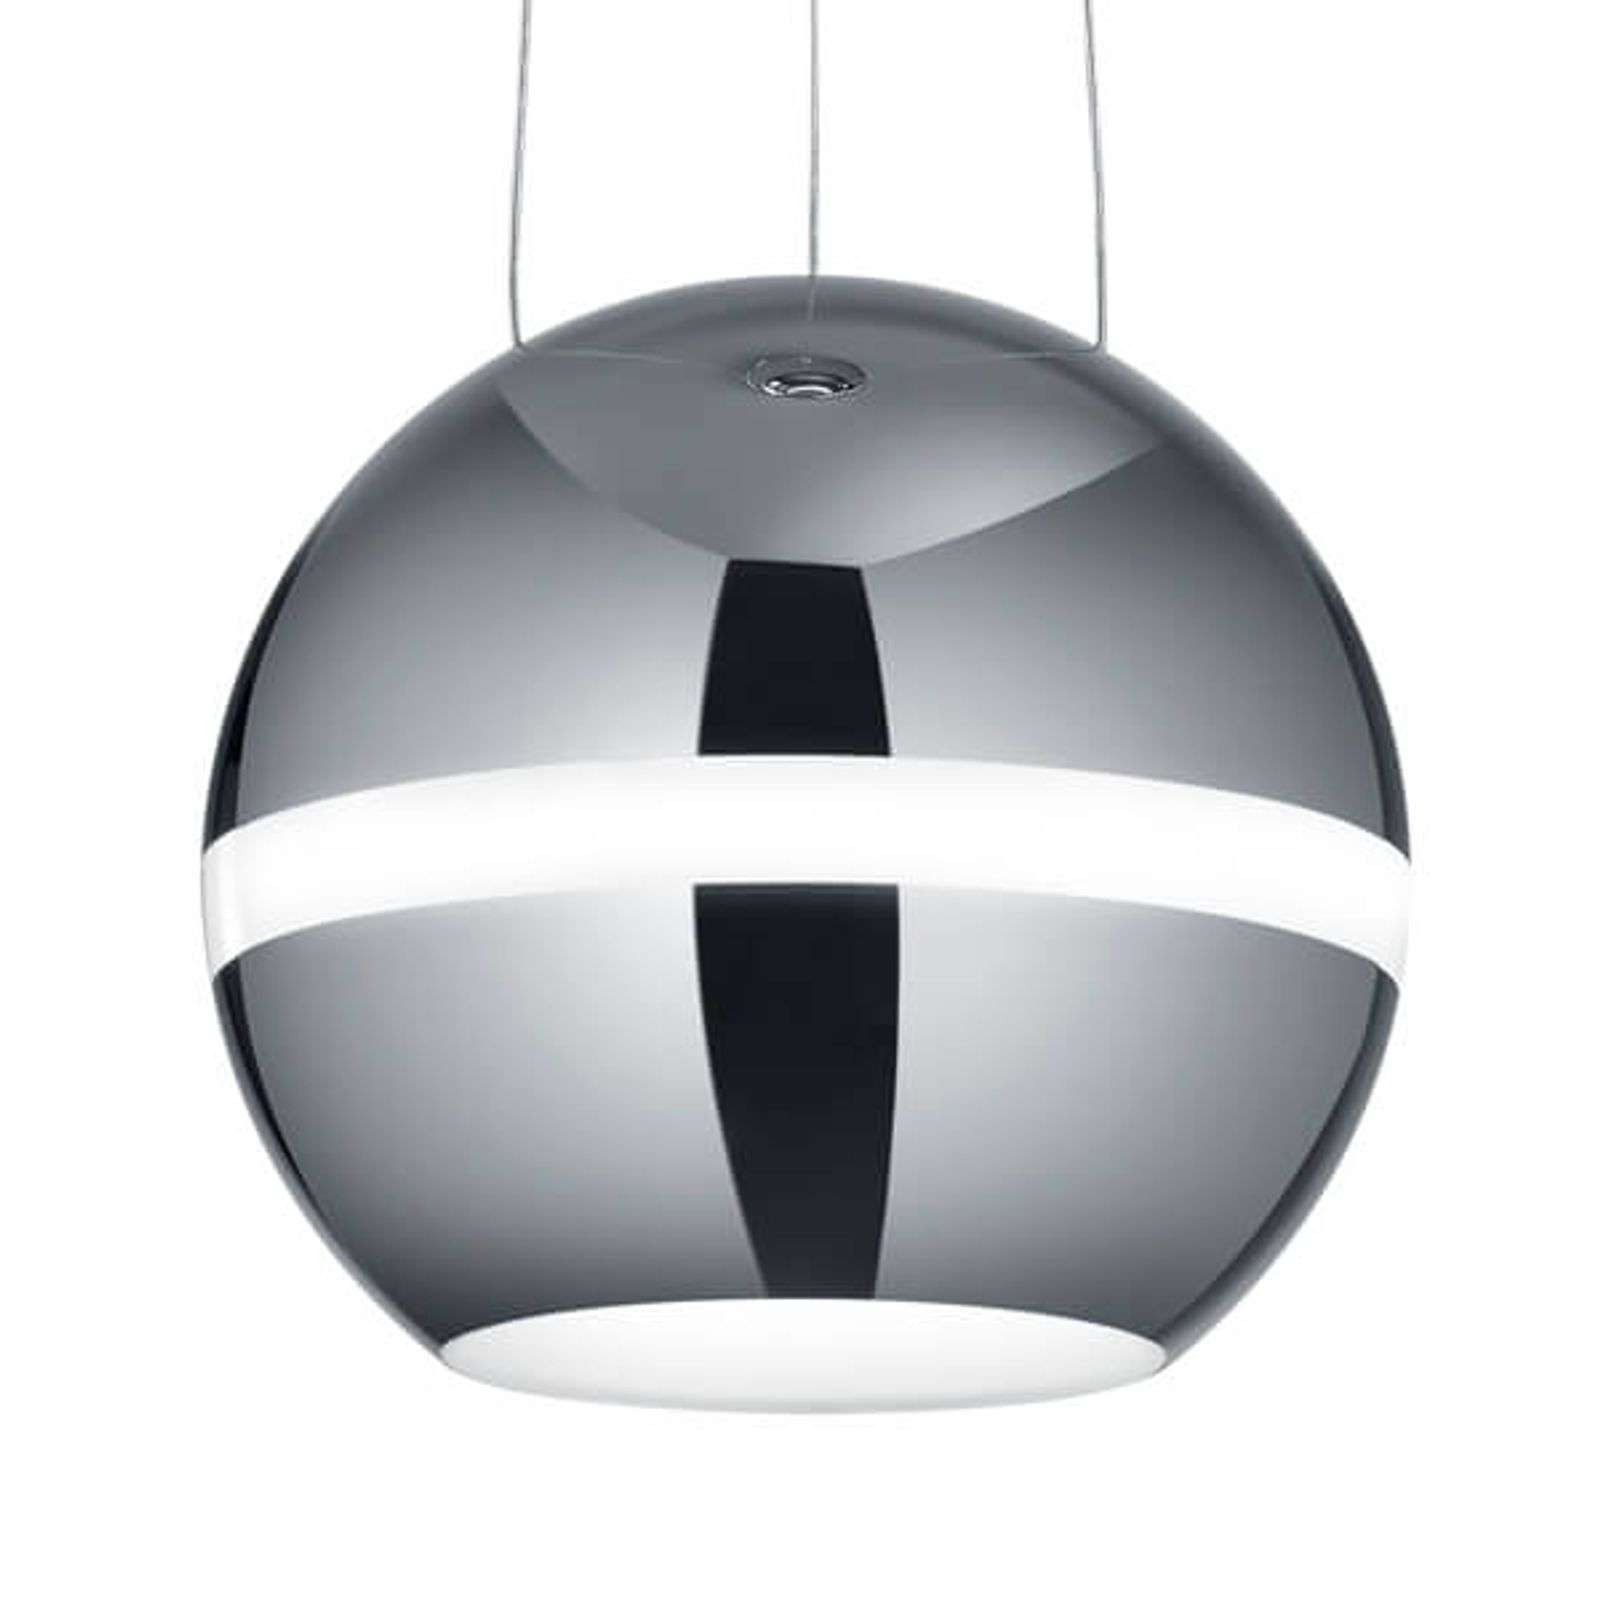 Balloon - kogelvormige LED hanglamp